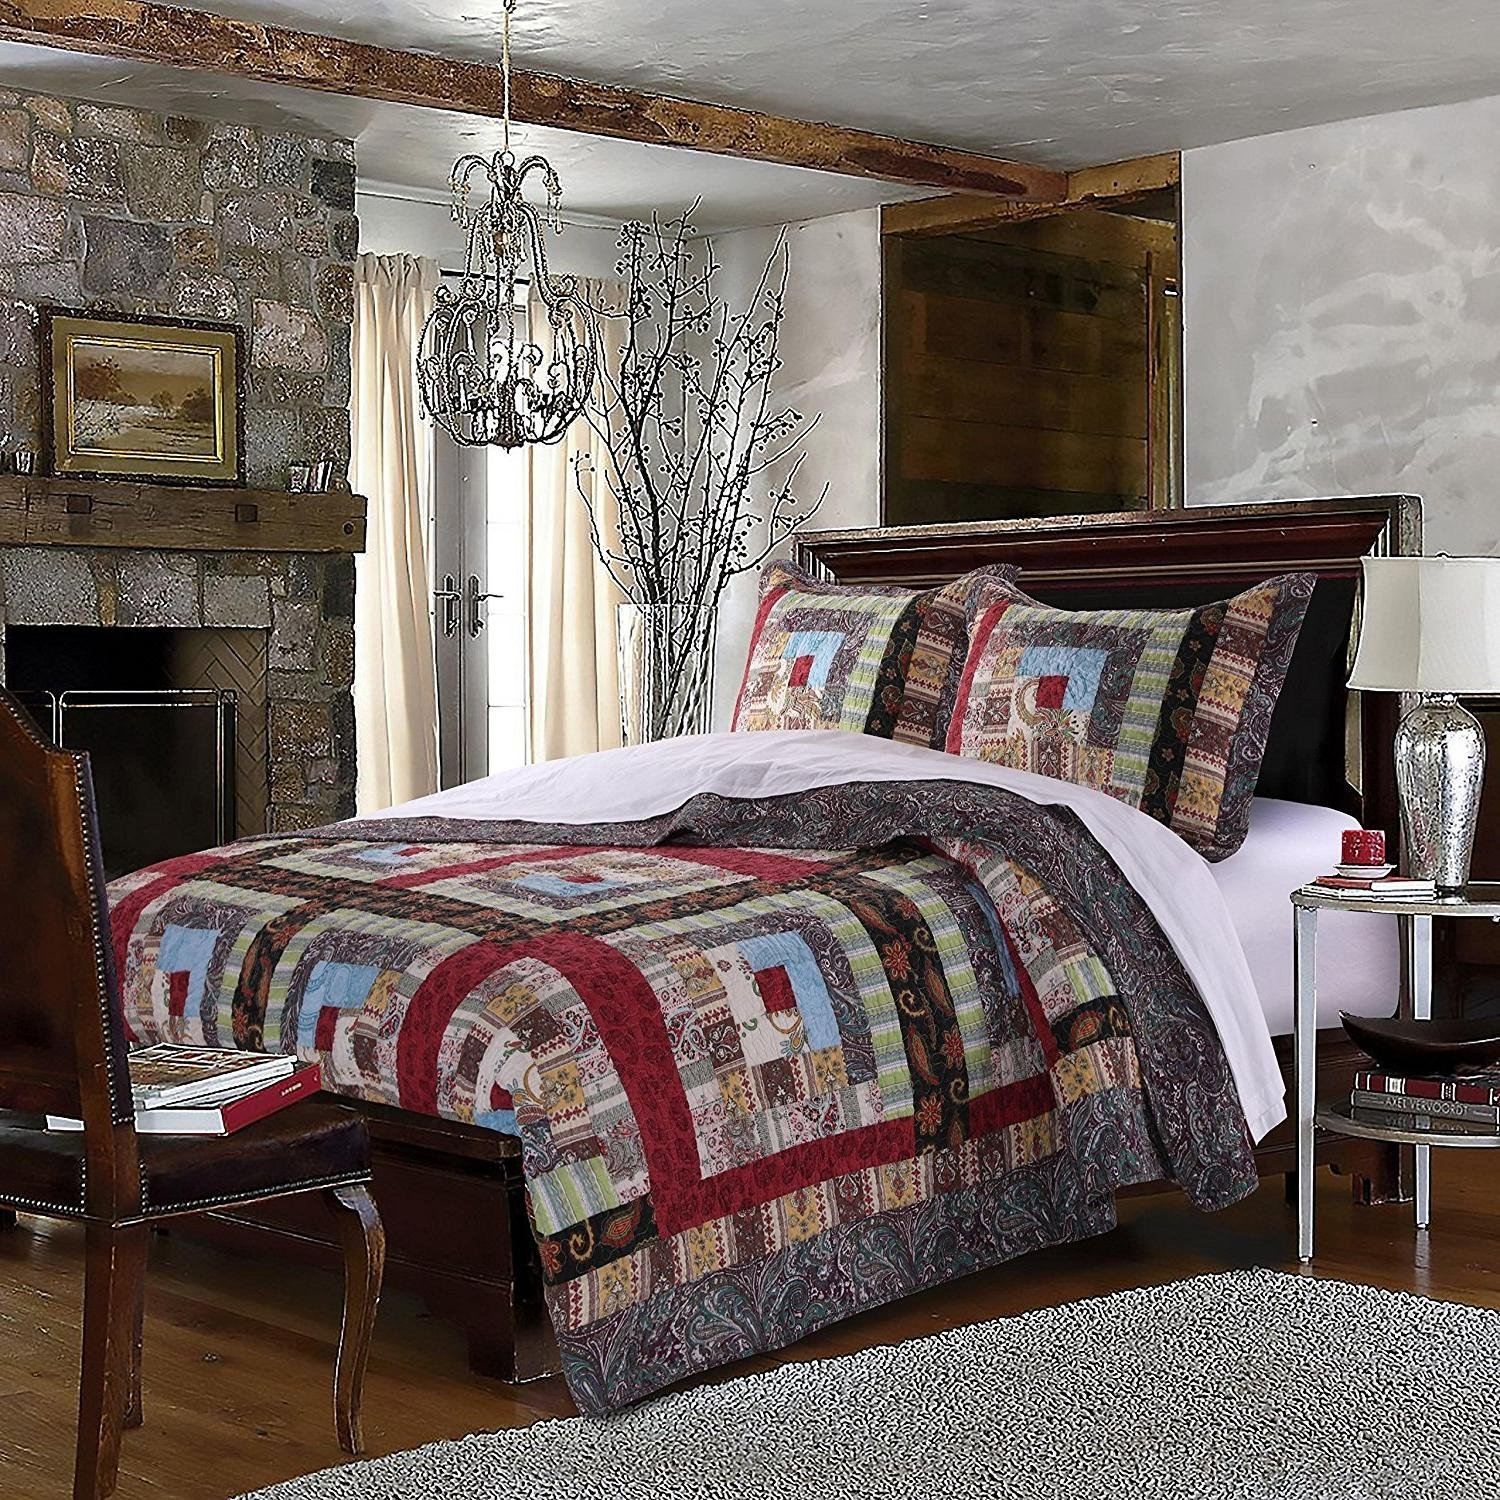 MISC 3pc Brown Patchwork Full Queen Size Quilt Set, Log Cabin Cottage, Red Blue Rustic Square Medallion Bedding, Cotton, Cotton, Floral Flowers Boho Chic Patch Work